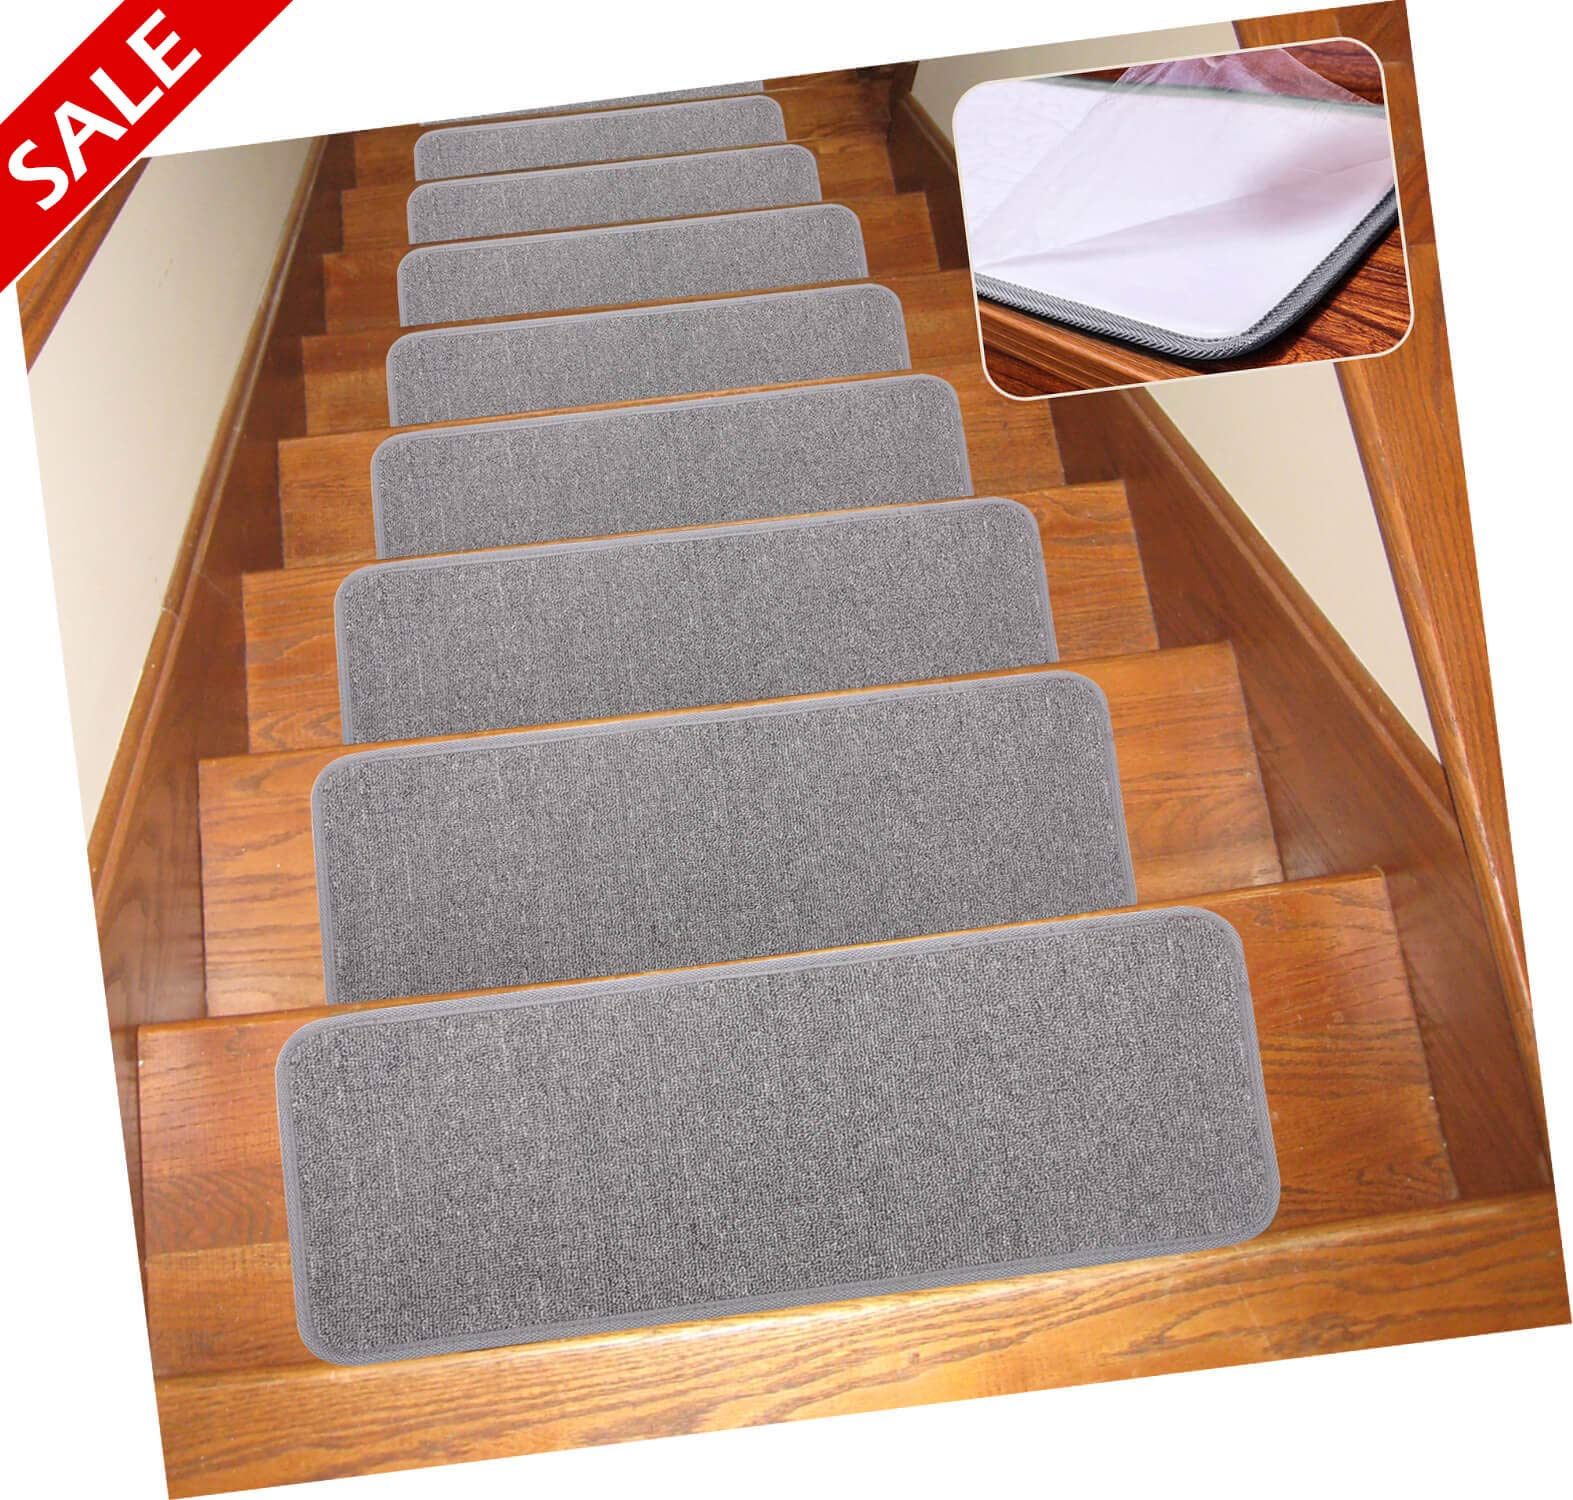 Seloom Carpet Stair Treads Non Slip Indoor Set of 13 Stair Treads Rug/Covers/Mats Grey, 25.5''×9.5'' by Seloom